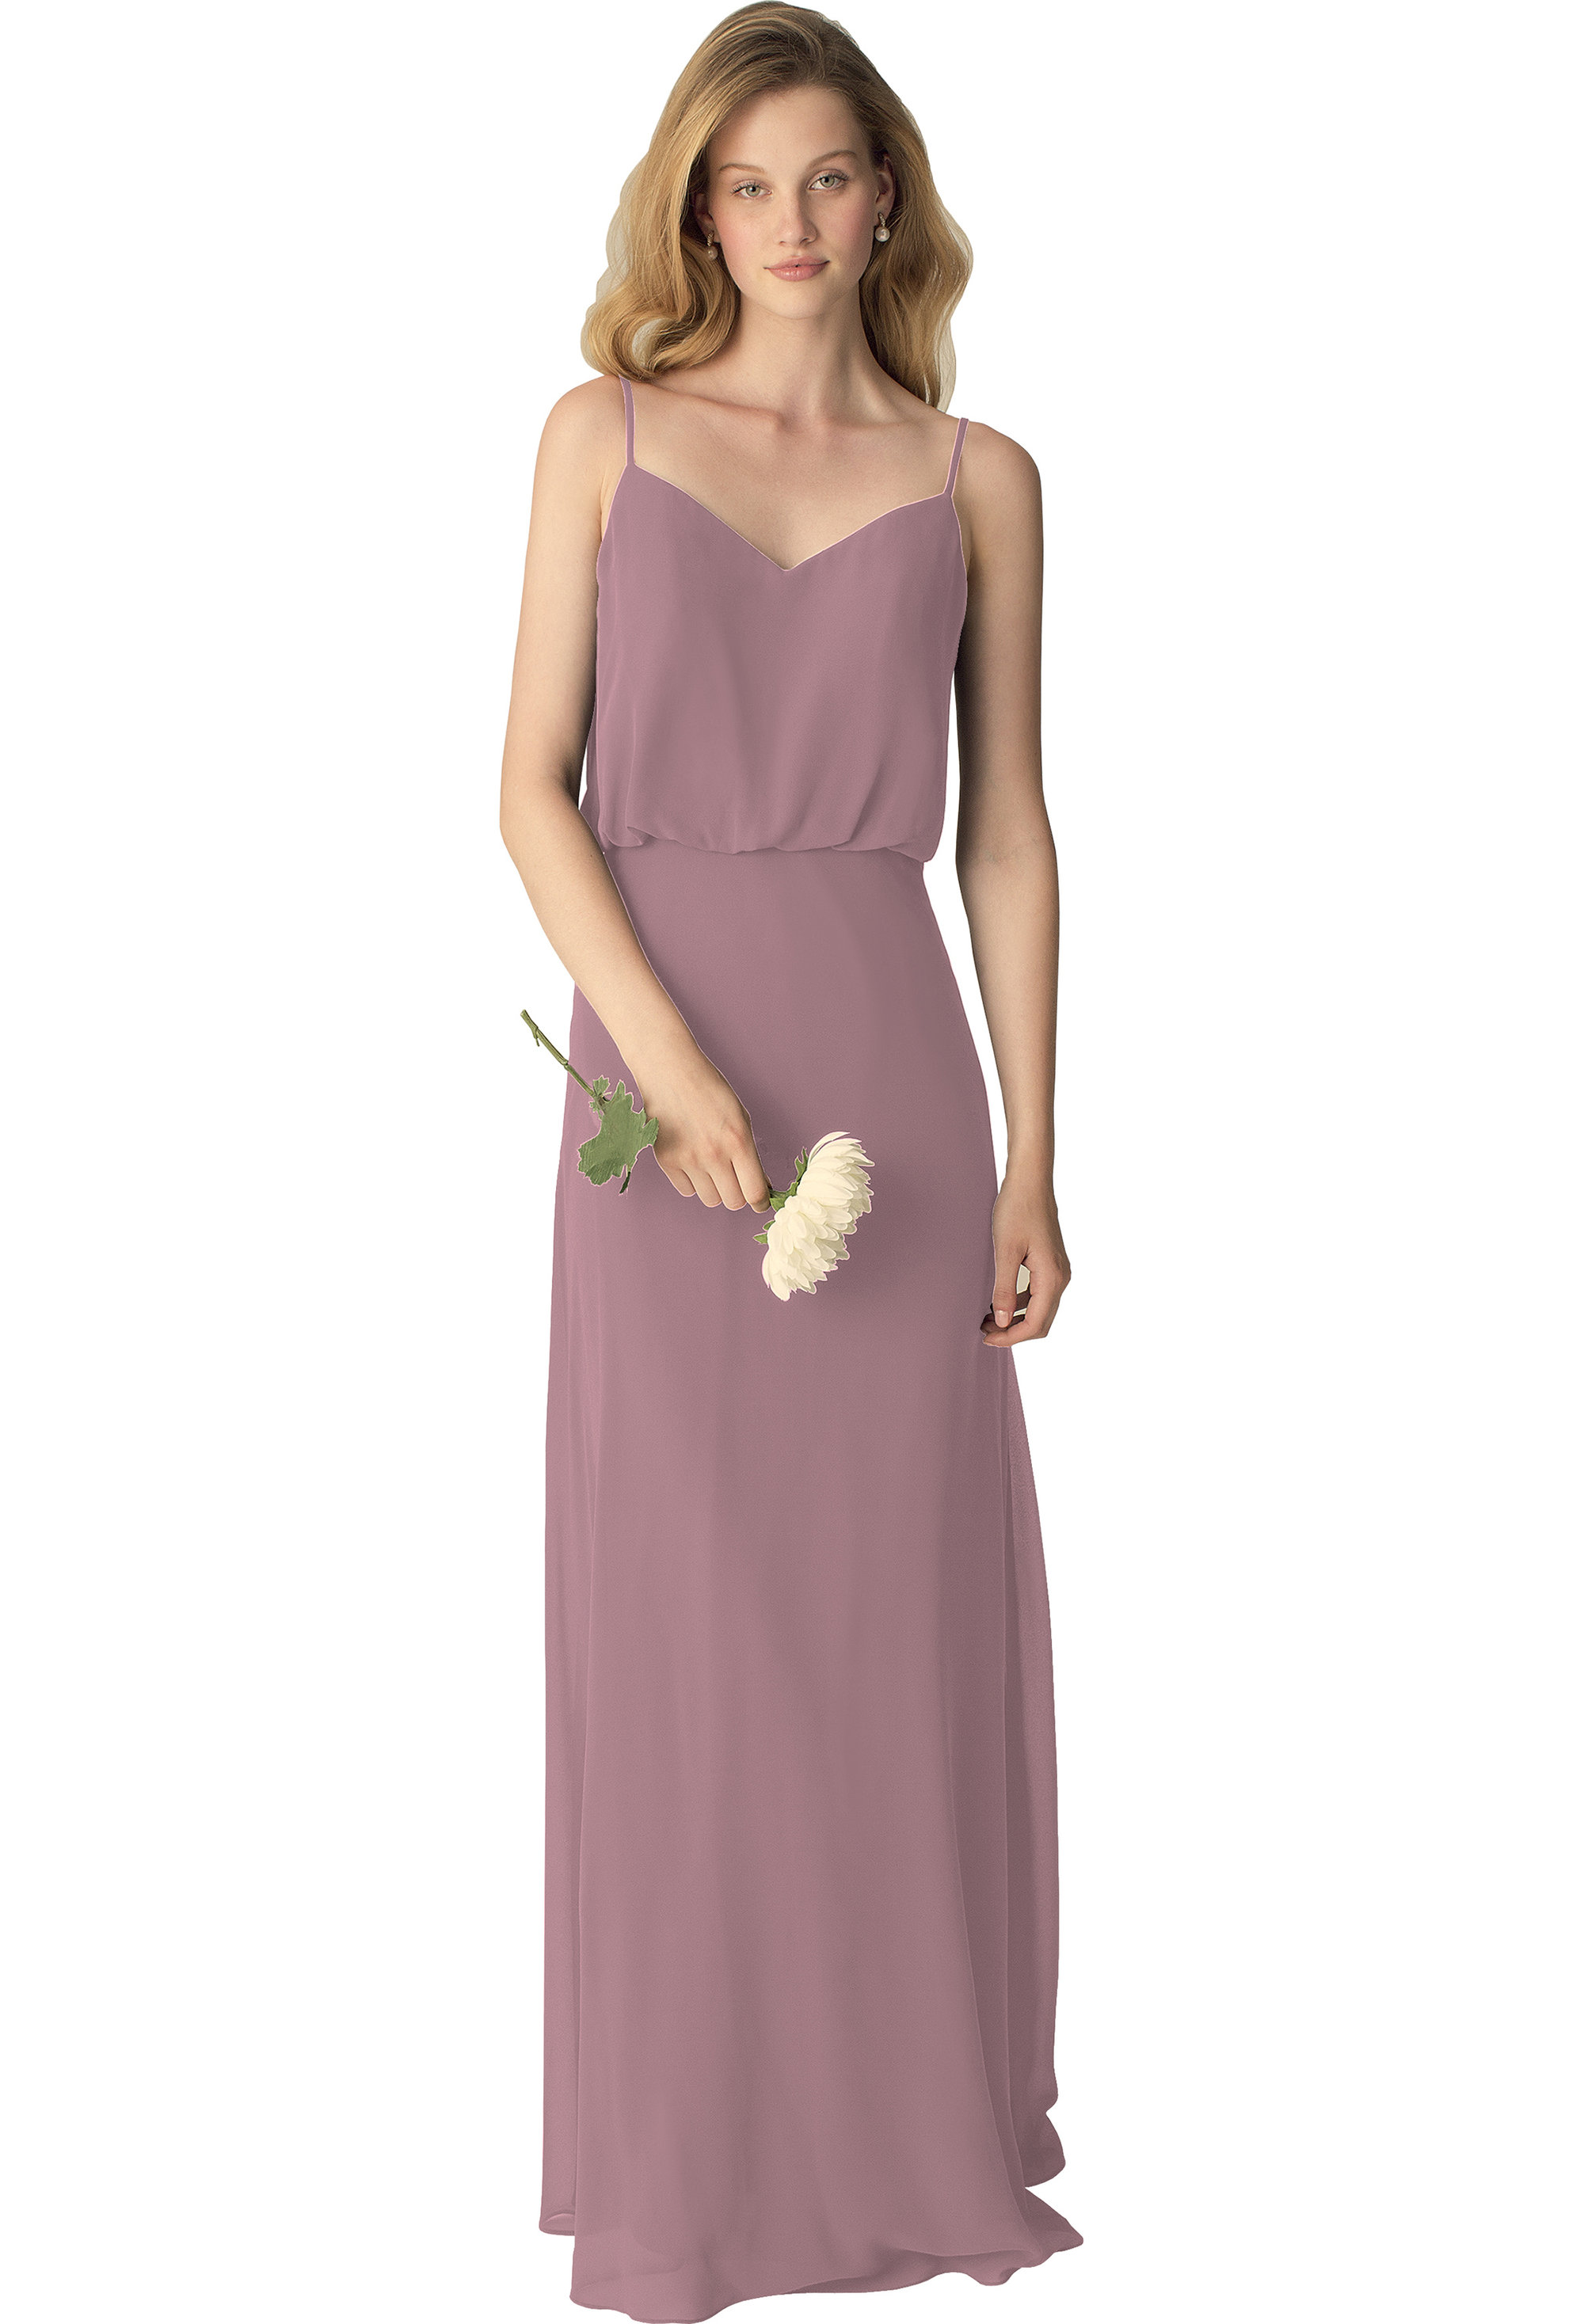 Bill Levkoff WISTERIA Chiffon Slight V-front A-line gown, $190.00 Front